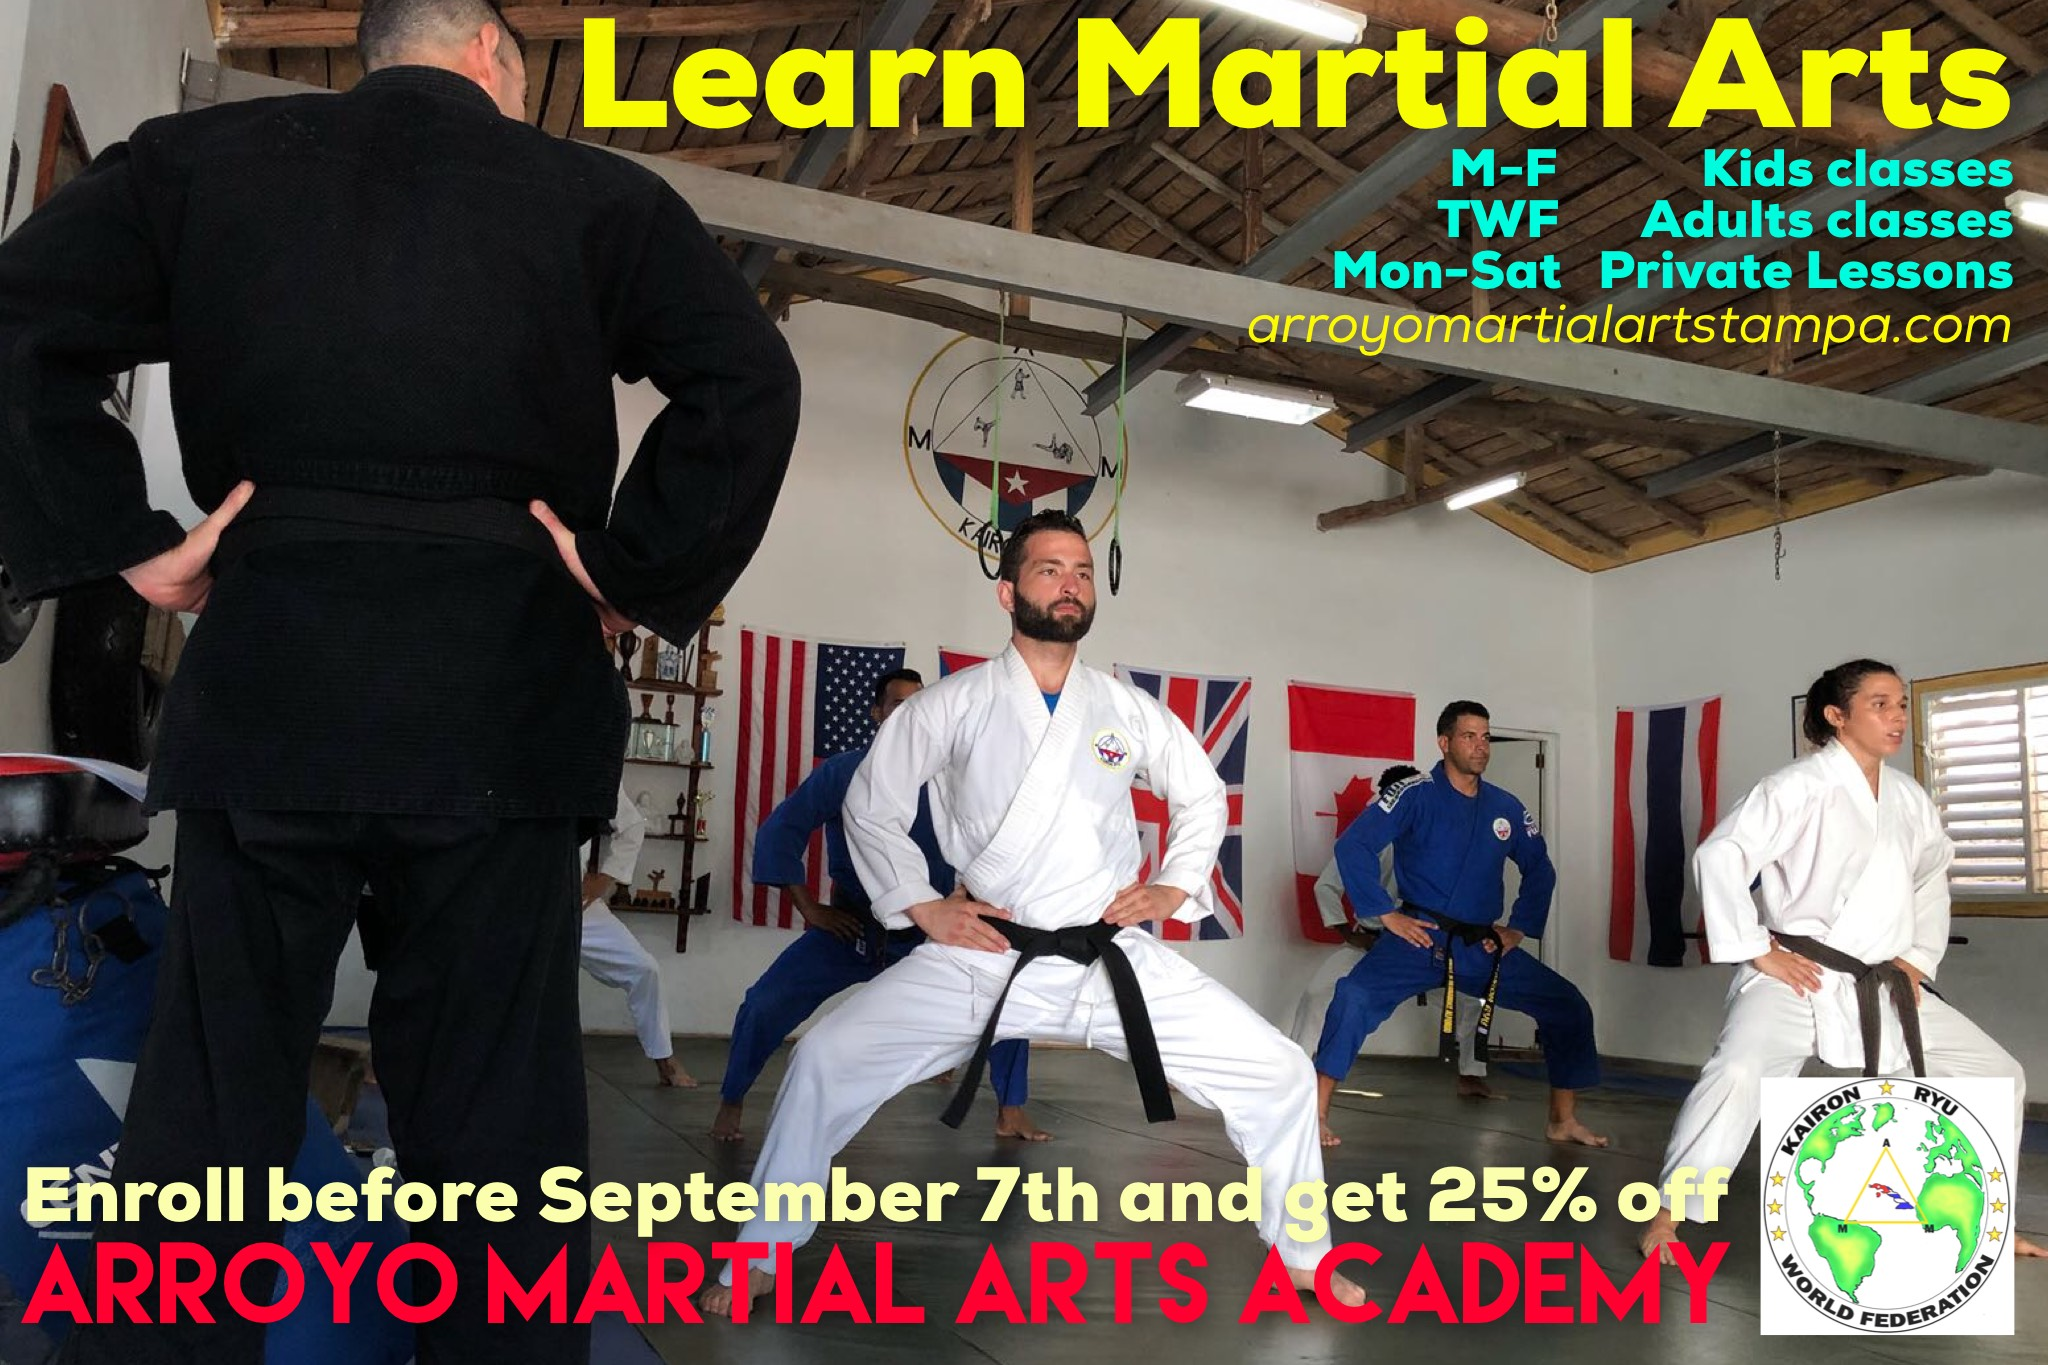 Our back to school promo is here! - Enroll today, and get a special 25% discount.See you at the dojo!